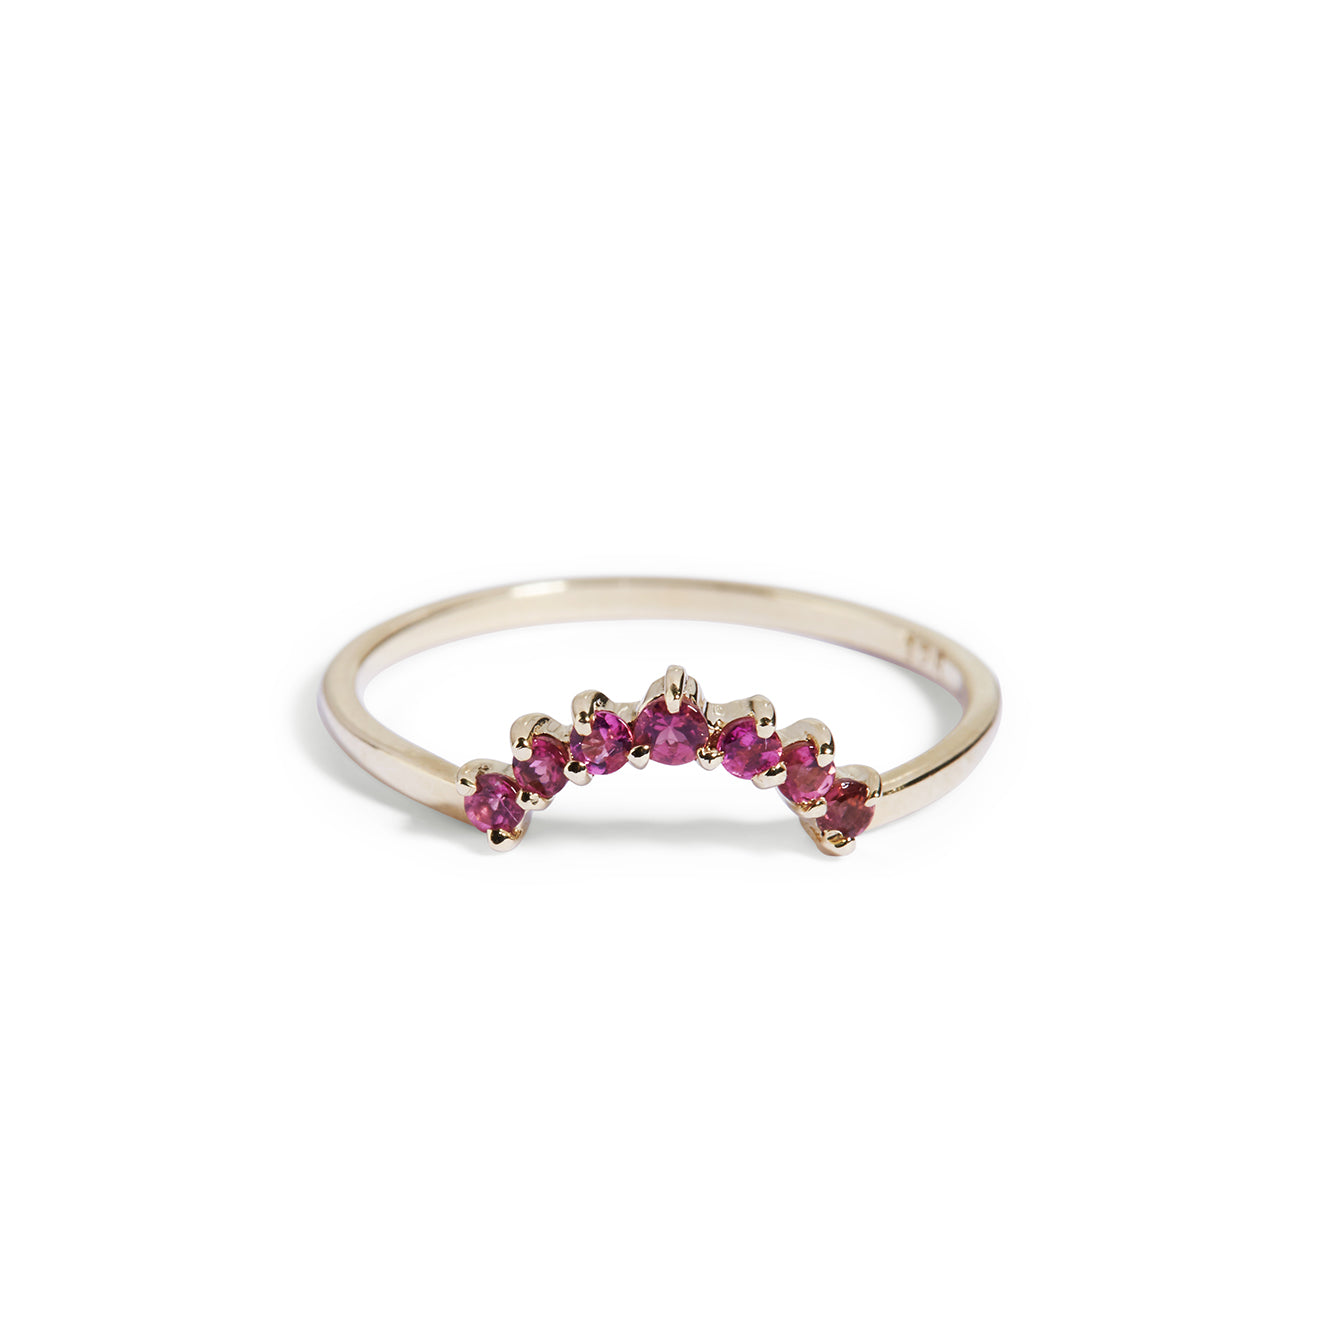 The Pink Tourmaline Halo Ring in 9kt Yellow Gold